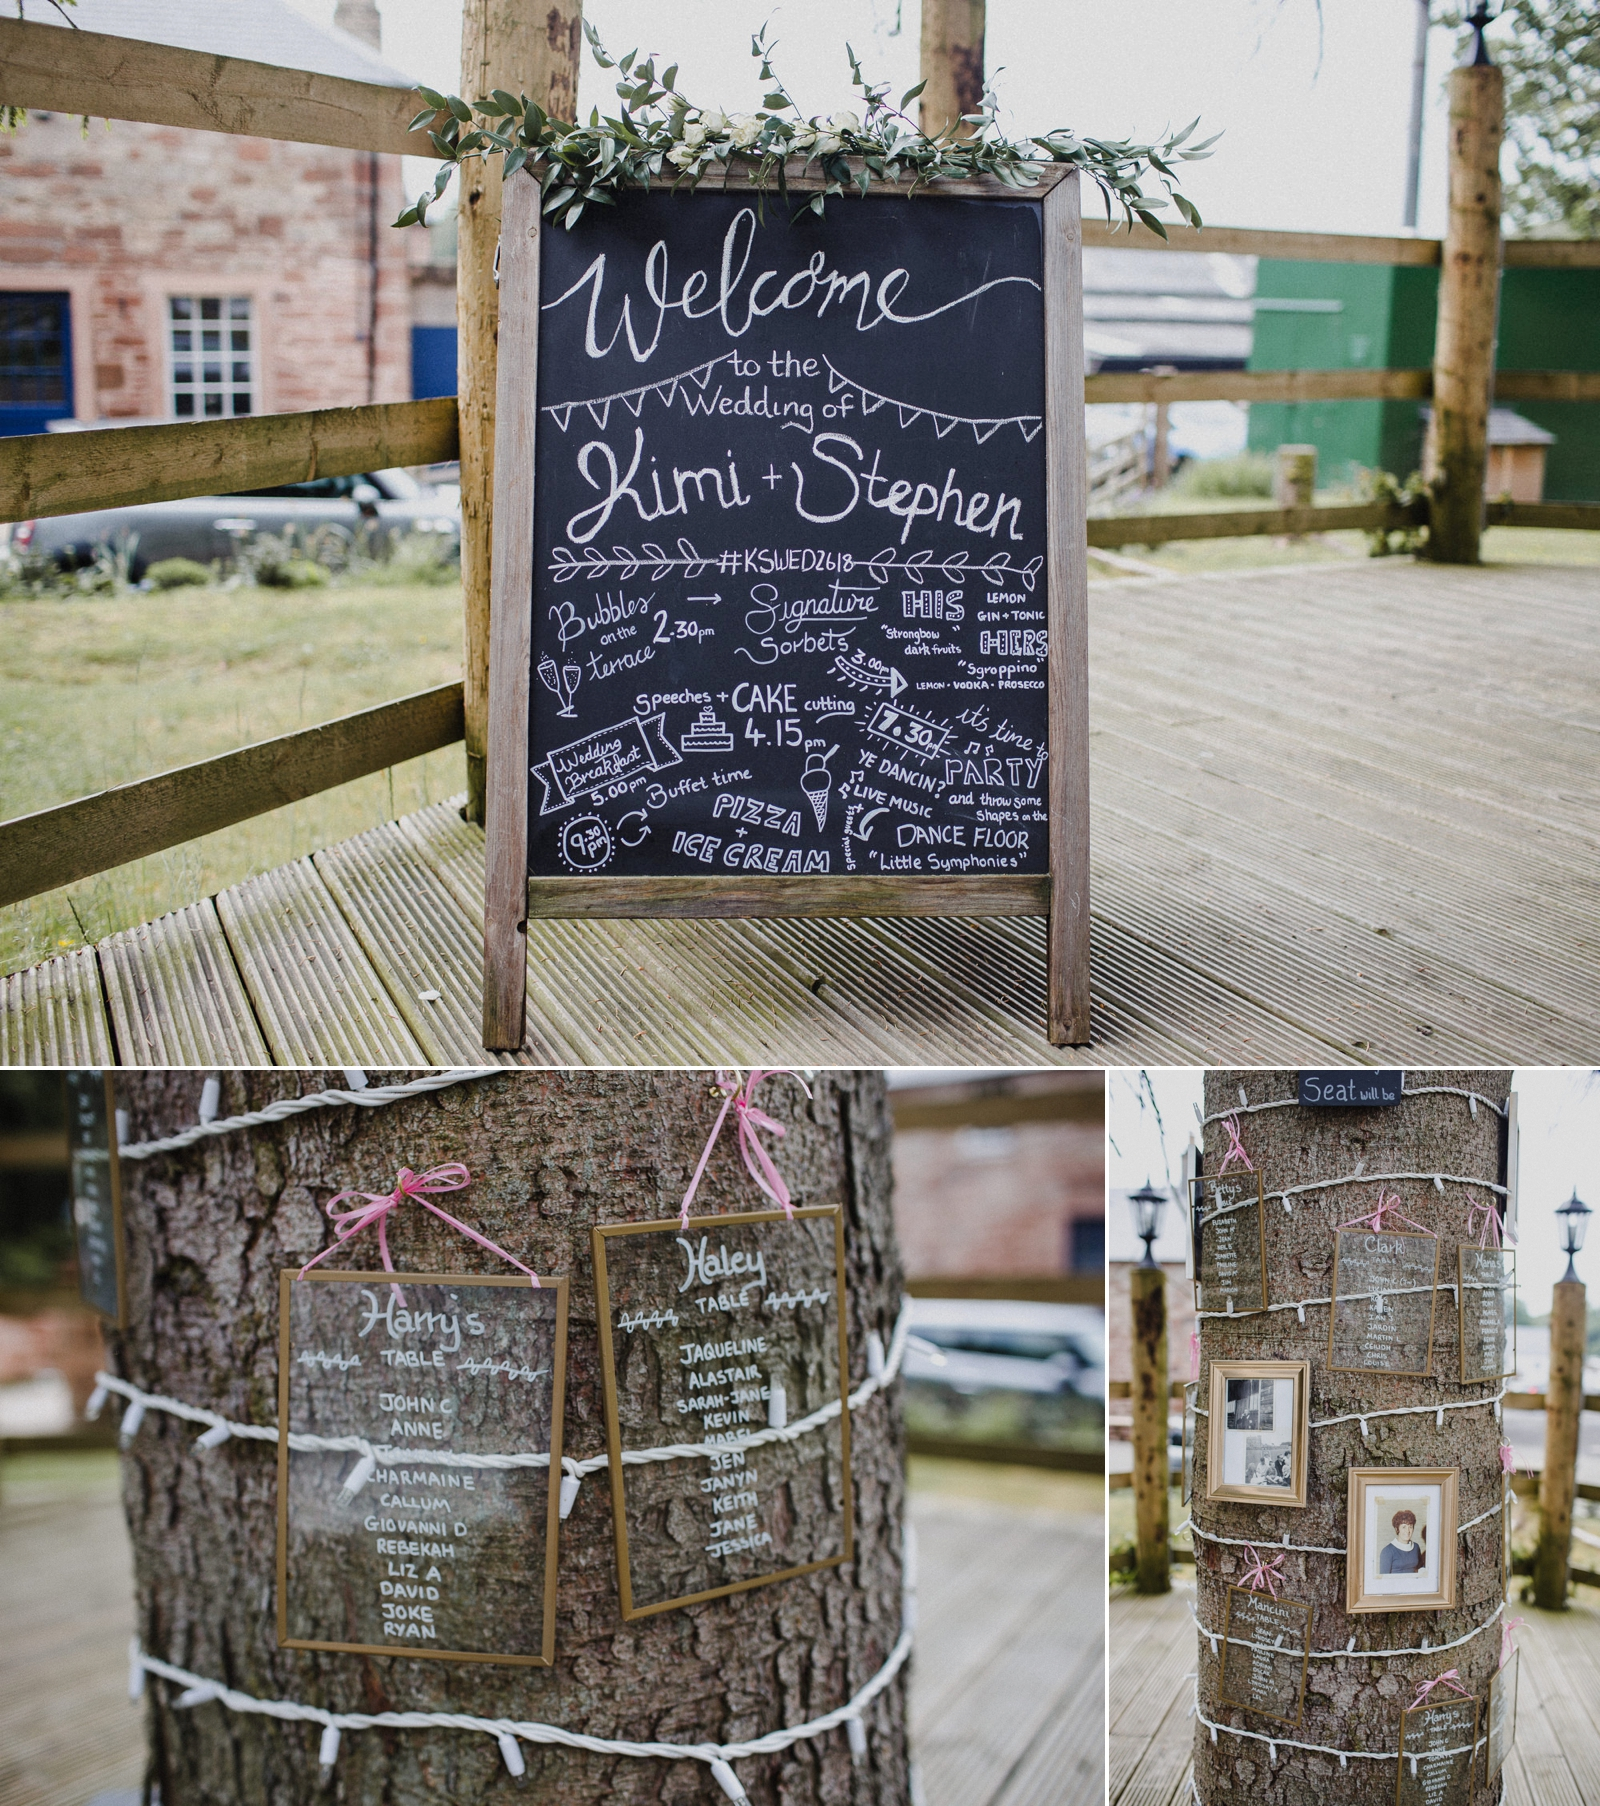 Boswell's Coach House Cumnock - Rustic Romantic wedding-21.jpg